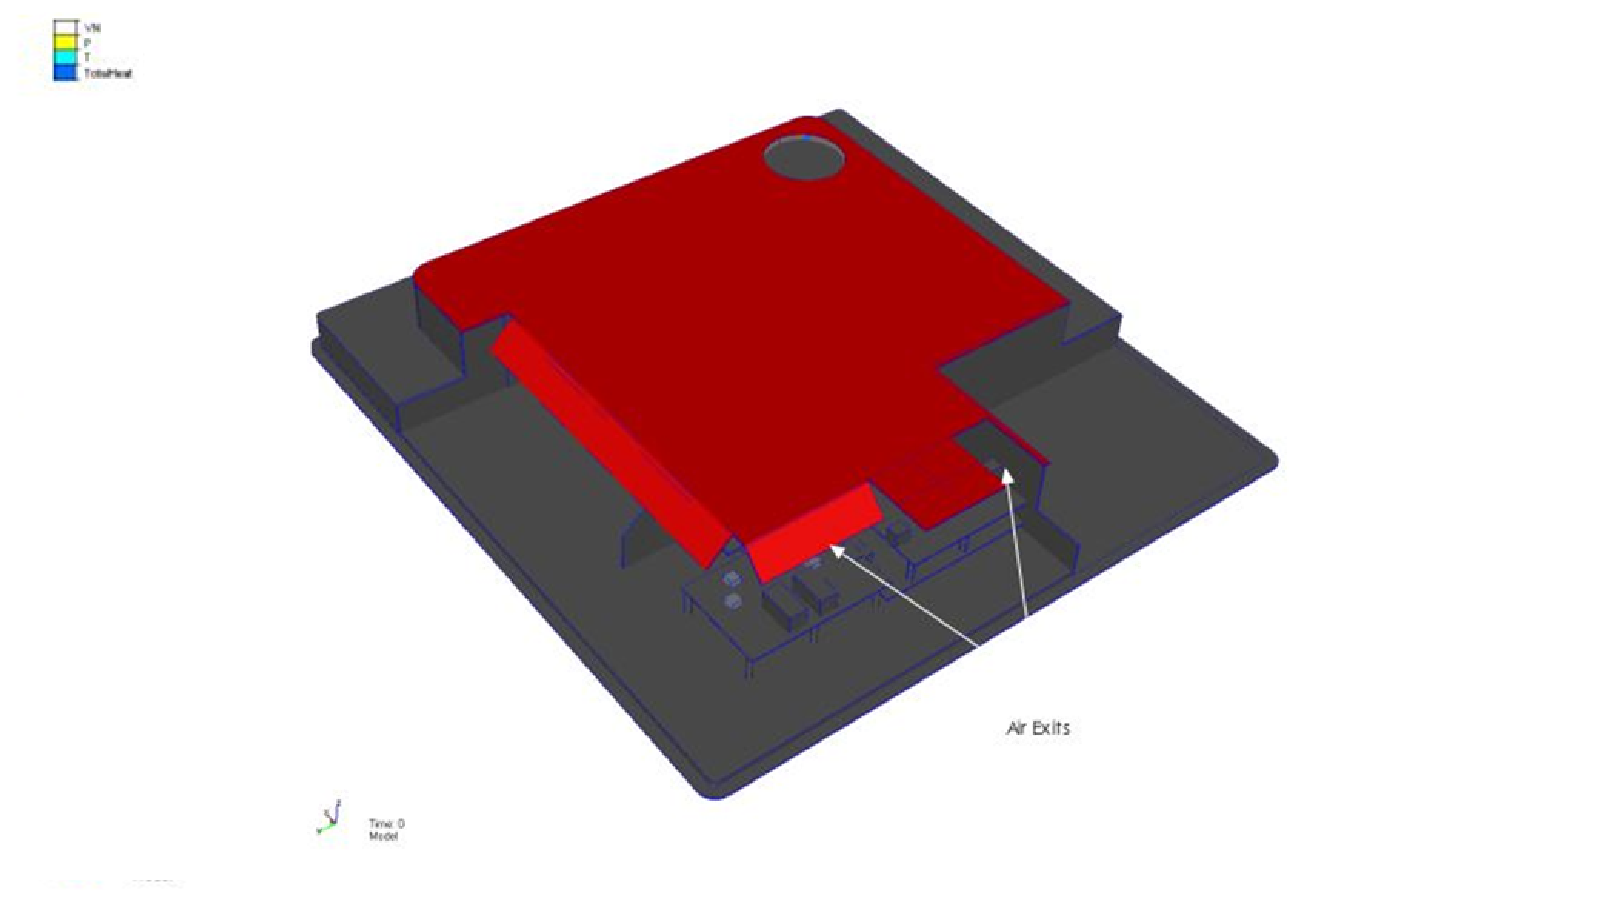 CFD simulation model of internal electronics assembly with thermal flow shield and chips and printed circuit boards (PCB)